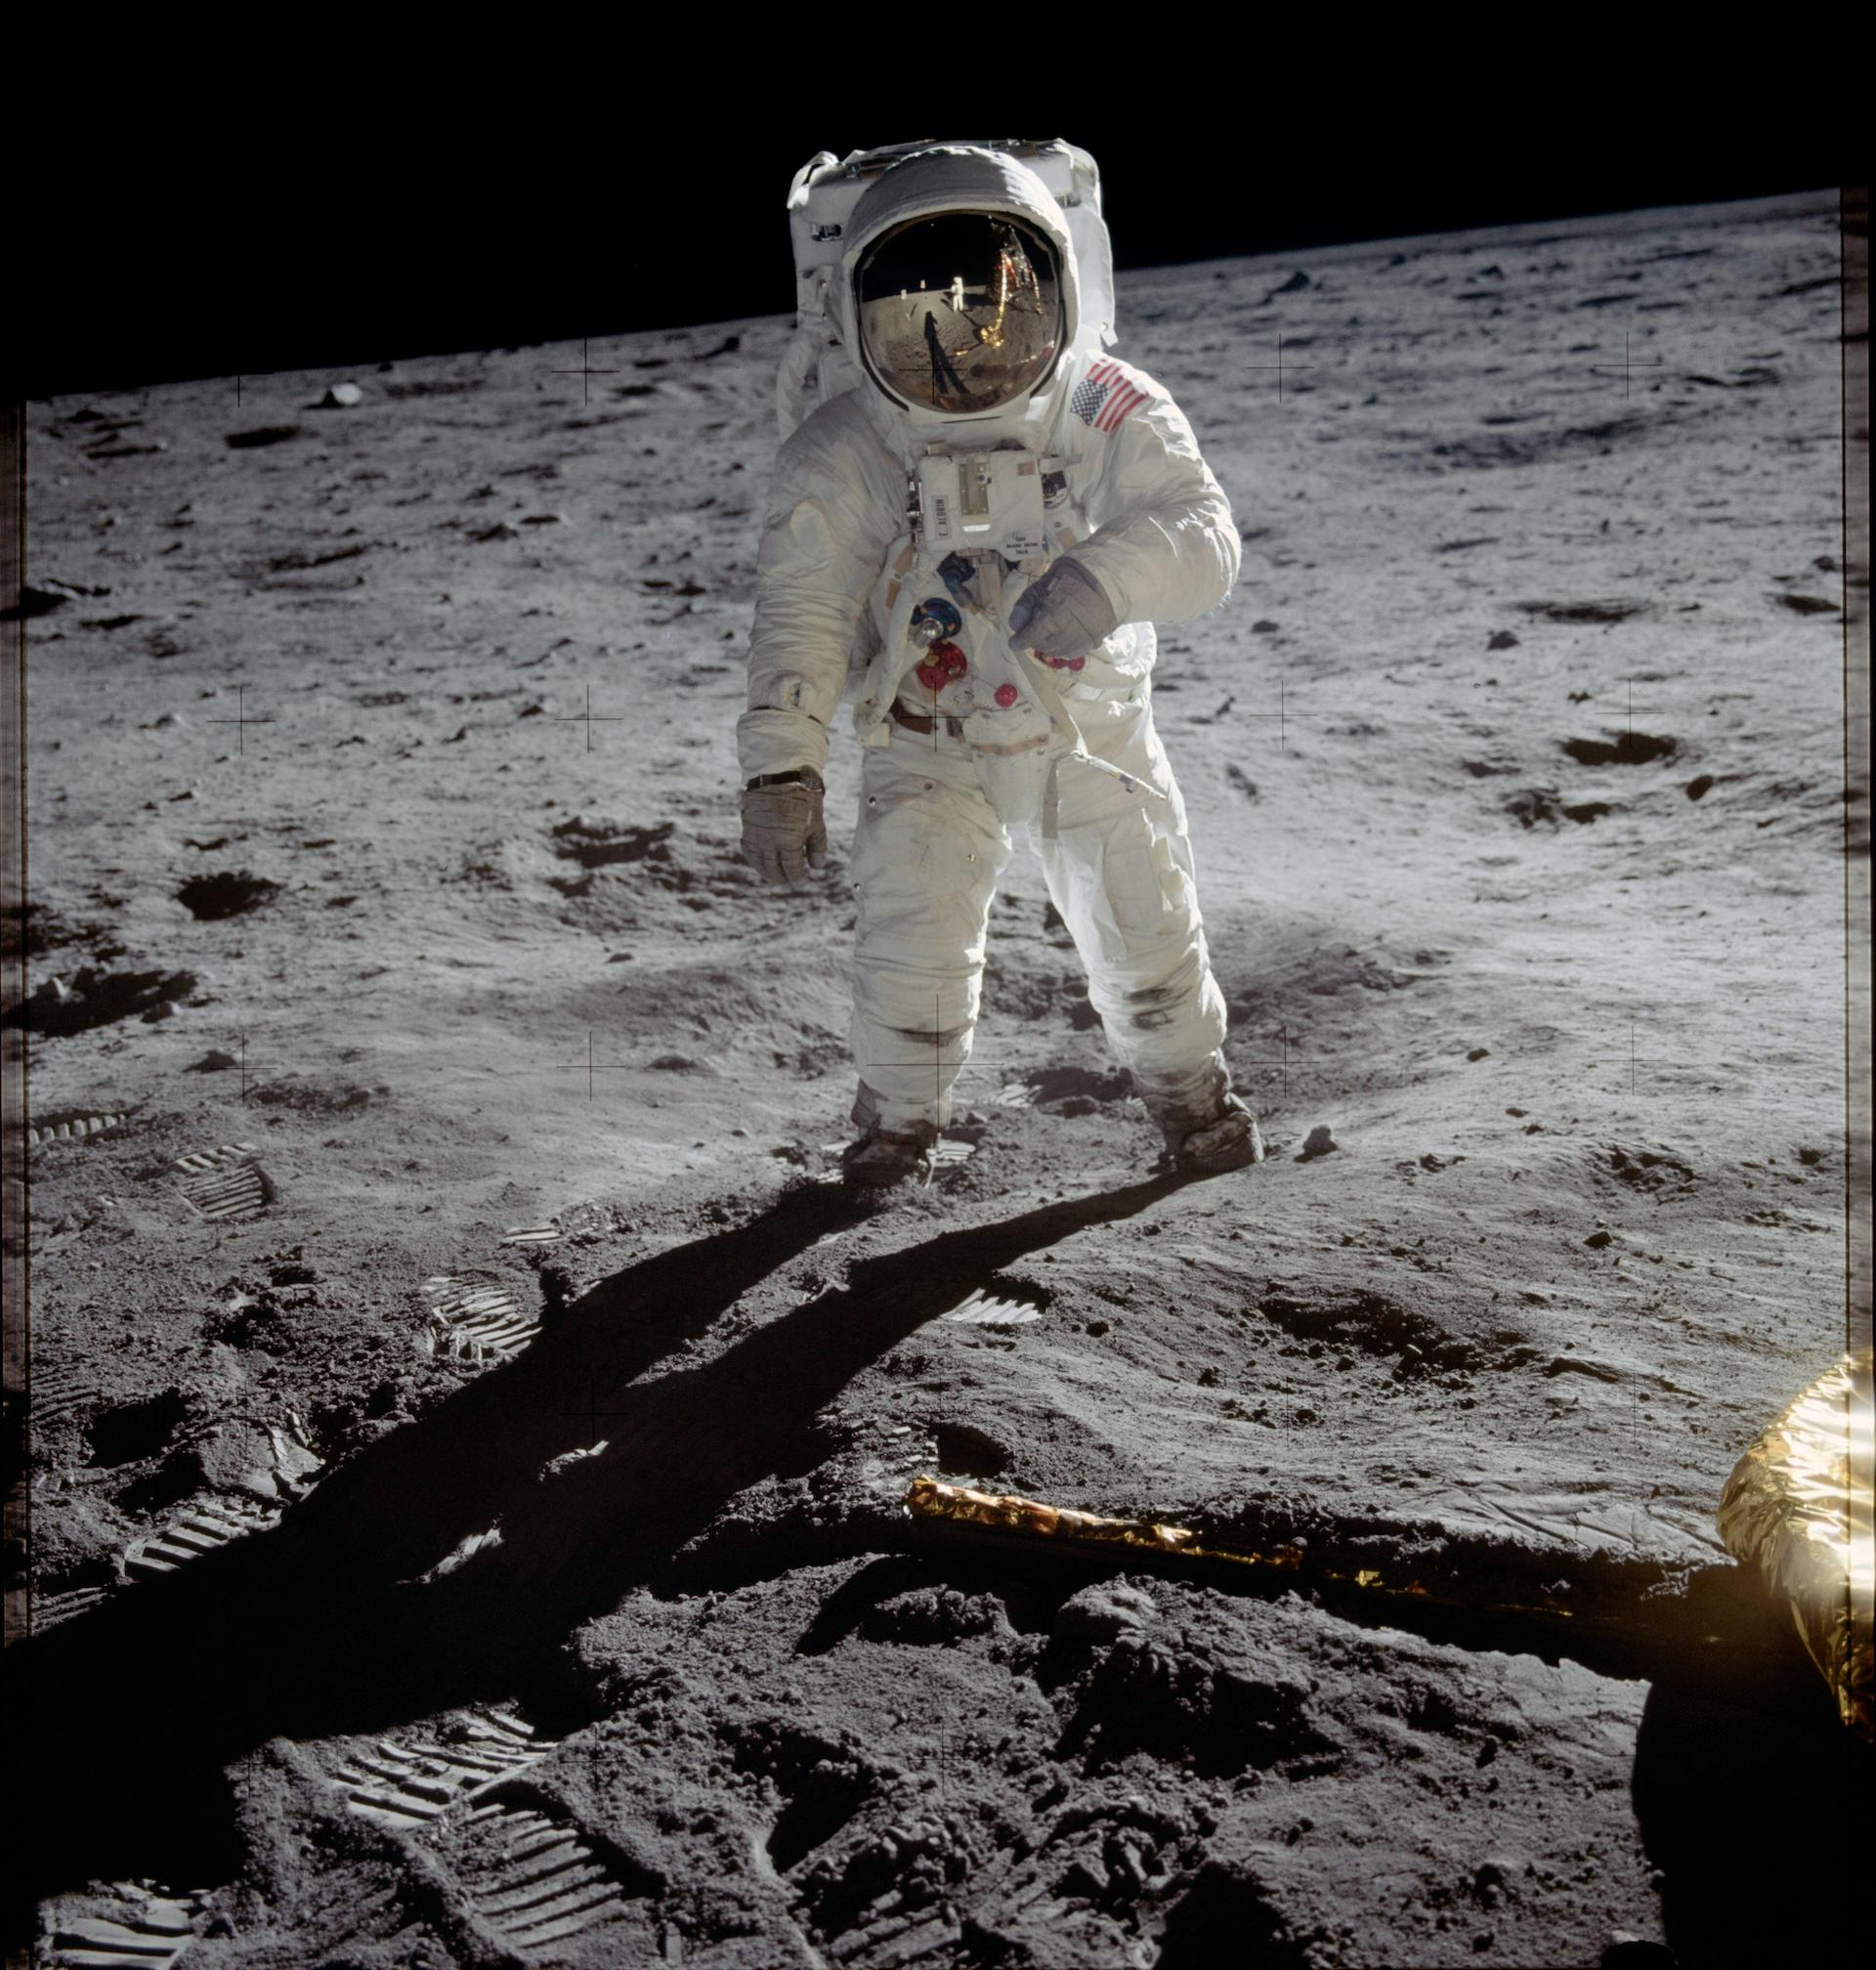 """Astronaut Edwin Aldrin (aka Buzz) walks on the surface of the moon, July 20, 1969. Neil A. Armstrong, commander, took this photo with a 70mm lunar surface camera. While astronauts Armstrong and Aldrin descended in the Lunar Module """"Eagle"""" to explore the Sea of Tranquility region of the moon, astronaut Michael Collins, command module pilot, remained with the Command and Service Modules (CSM) """"Columbia"""" in lunar orbit. Photo © NASA"""